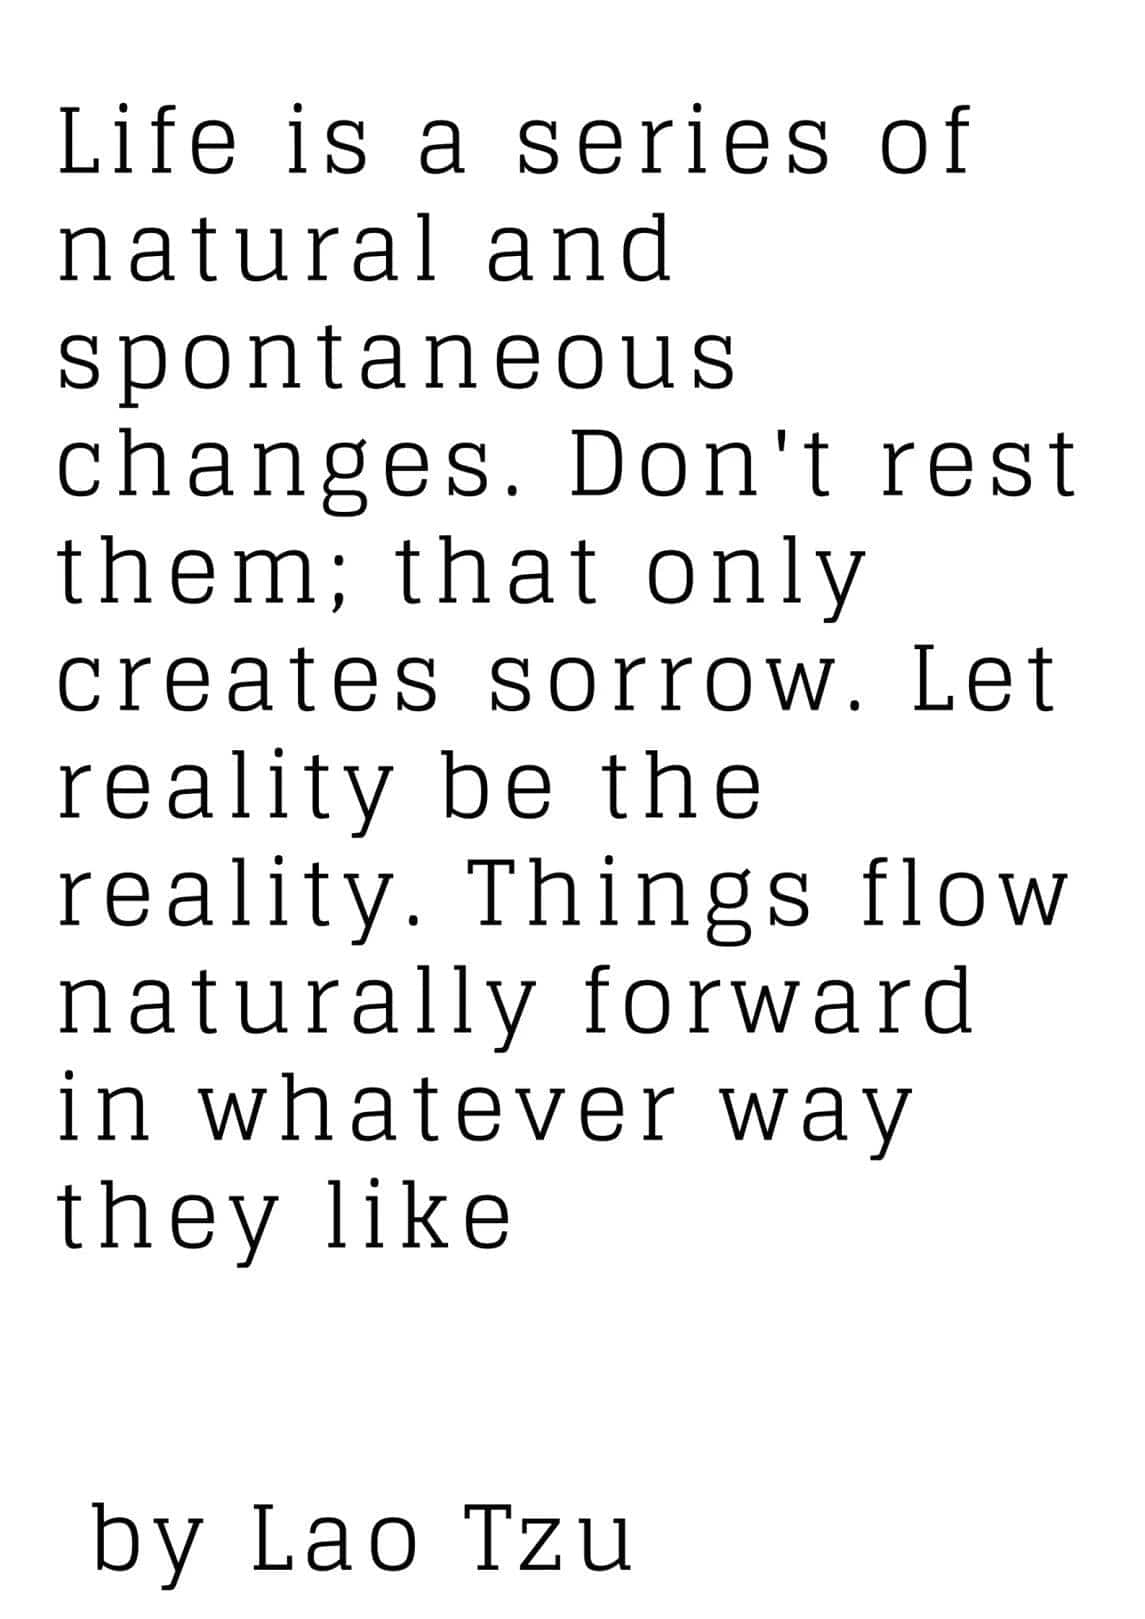 Wise quotes about change Business quotes about change Famous quotes about change Funny quotes about change Quotes about change